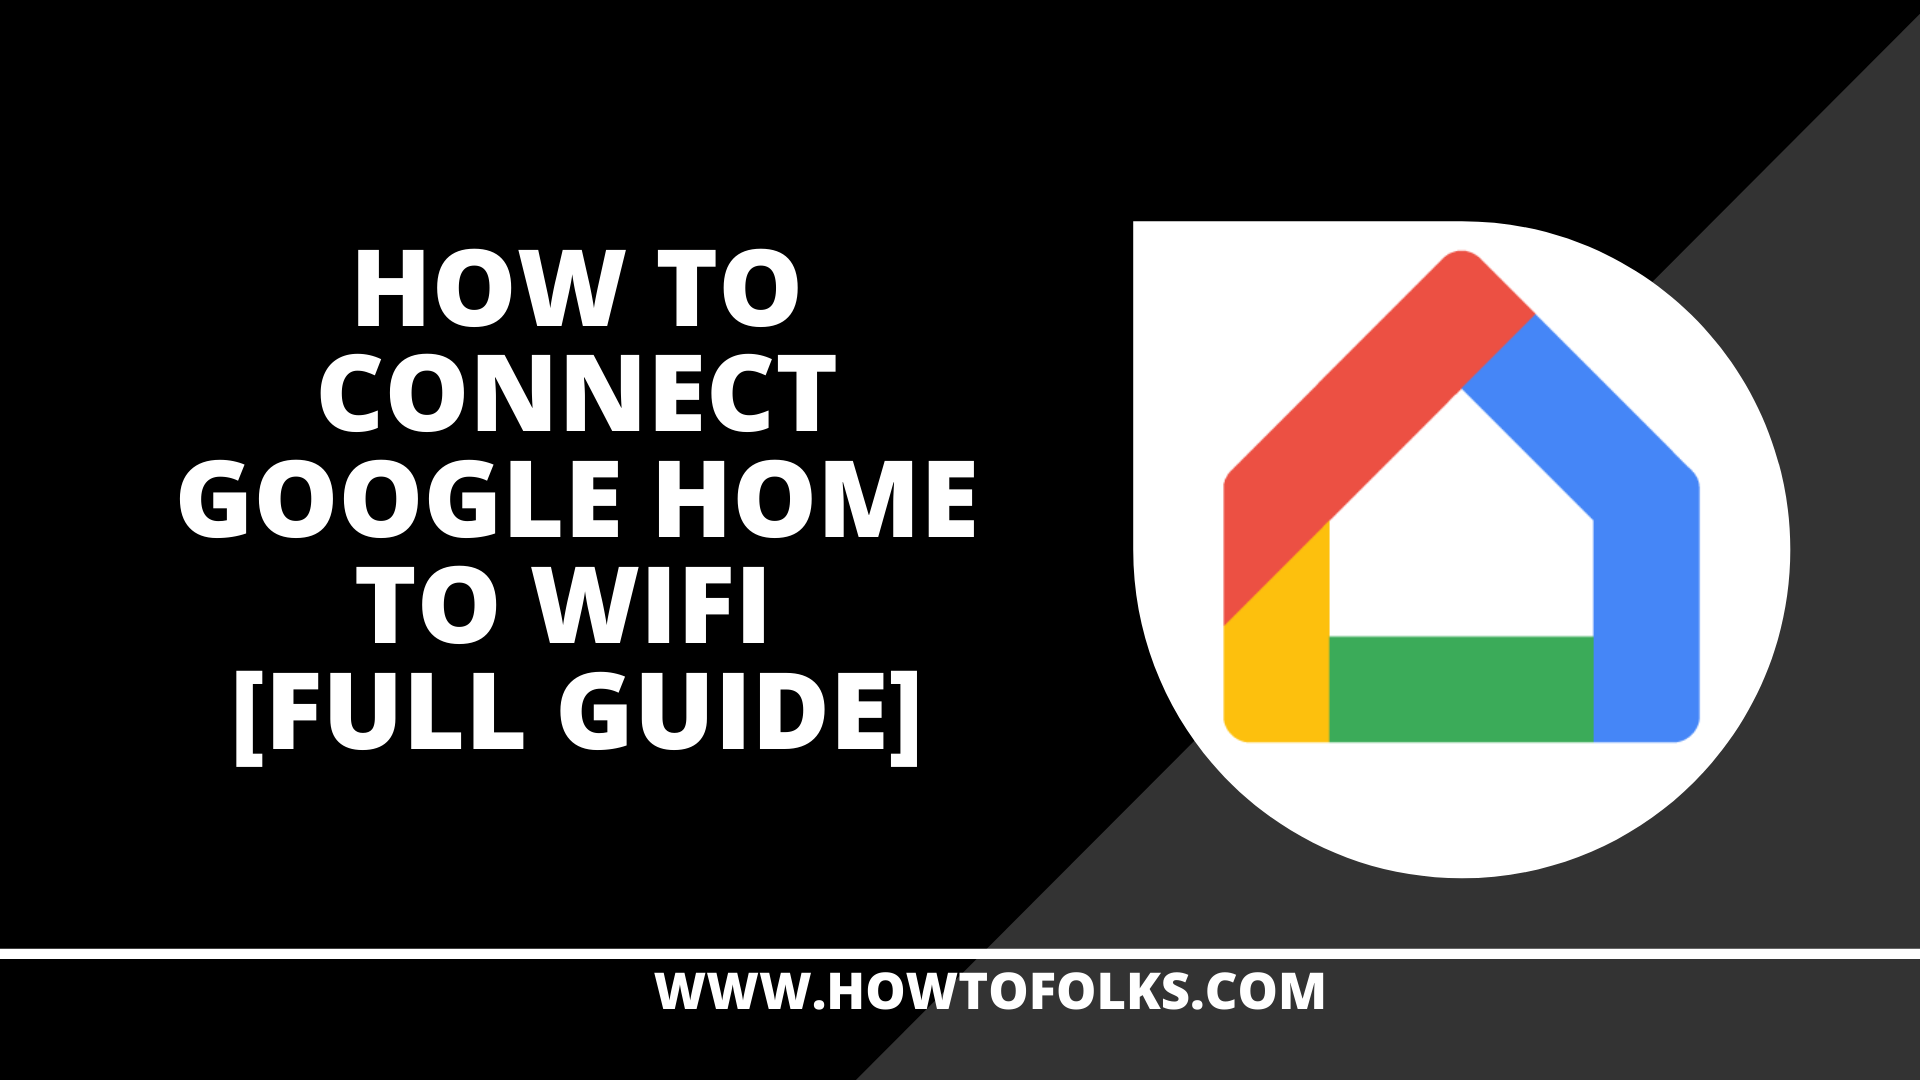 How To Connect Google Home to Wifi